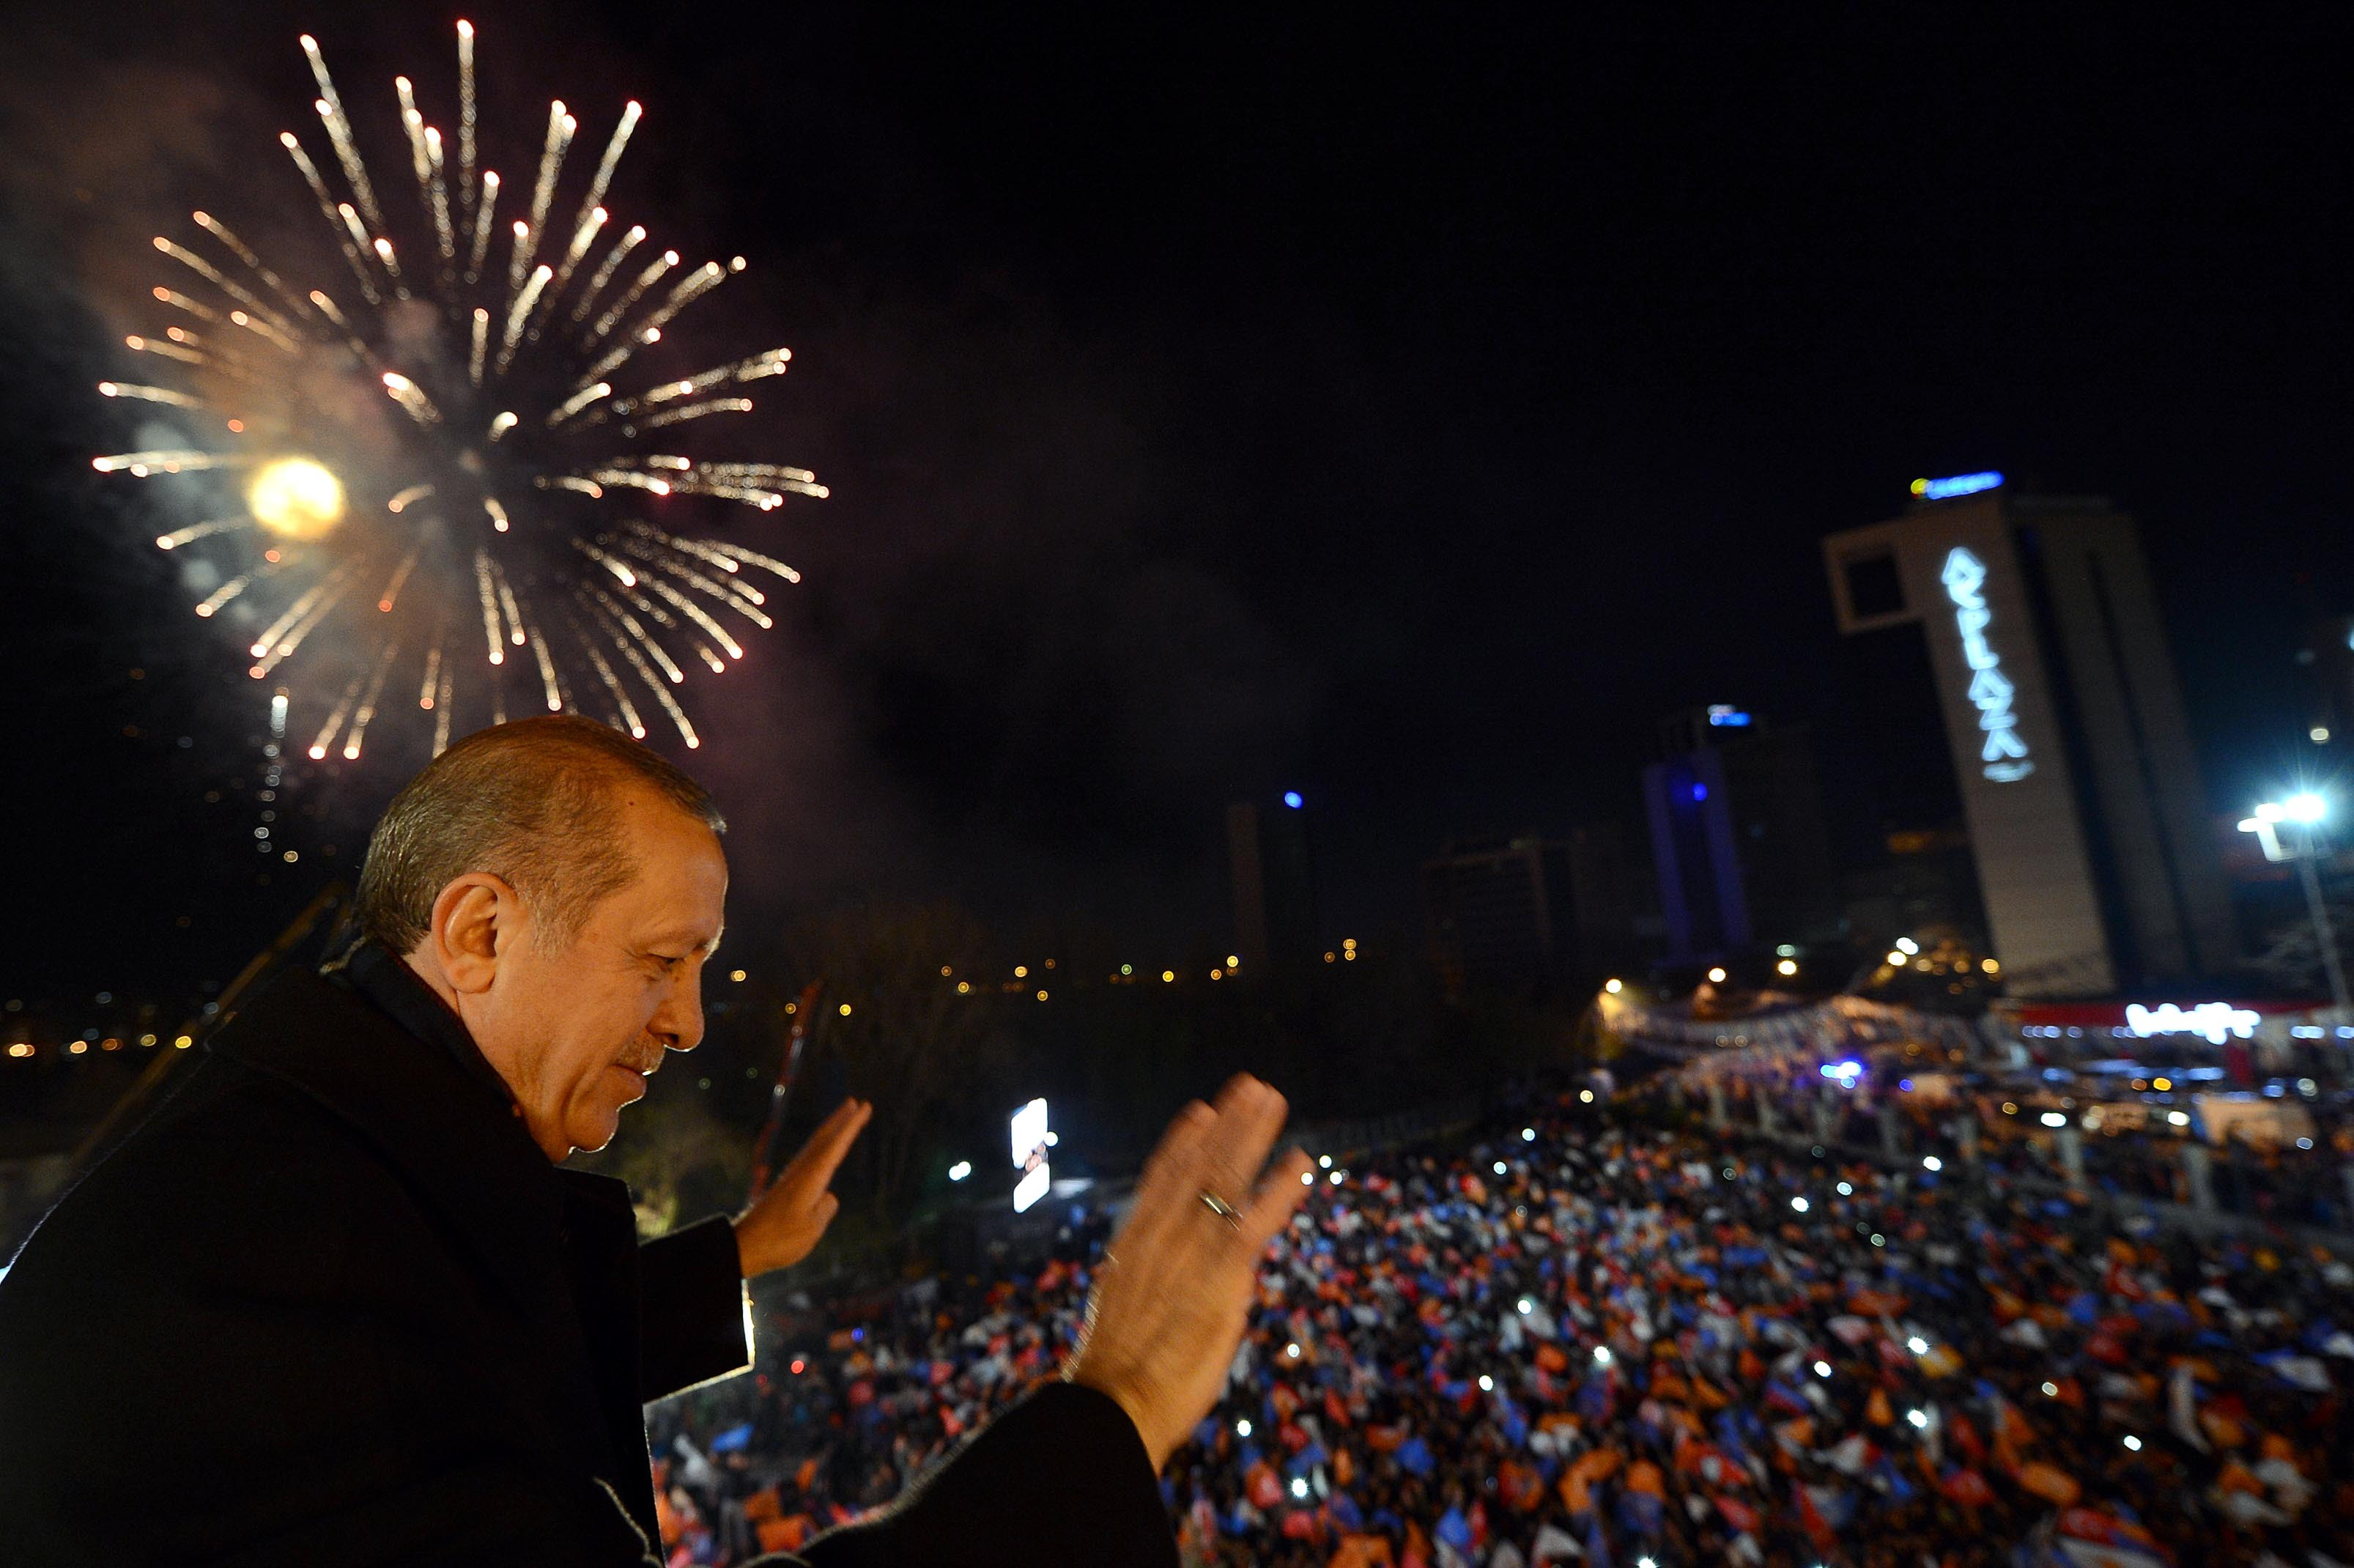 "A March 30, 2014 handout picture released by the Prime Minister Press Office shows Turkey's Prime Minister Tayyip Erdogan greets his supporters in Ankara on March 30, 2014.   Turkey's Premier Recep Tayyip Erdogan claimed victory for his Islamic-rooted party in Sunday's key local elections and warned his foes they will ""pay the price"" for plotting his downfall.    AFP PHOTO/KAYHAN OZER/PRIME MINISTER PRESS OFFICE/HANDOUT    == RESTRICTED TO EDITORIAL USE - MANDATORY CREDIT ""AFP PHOTO / KAYHAN OZER / PRIME MINISTER PRESS OFFICE"" - NO MARKETING NO ADVERTISING CAMPAIGNS - DISTRIBUTED AS A SERVICE TO CLIENTS ="